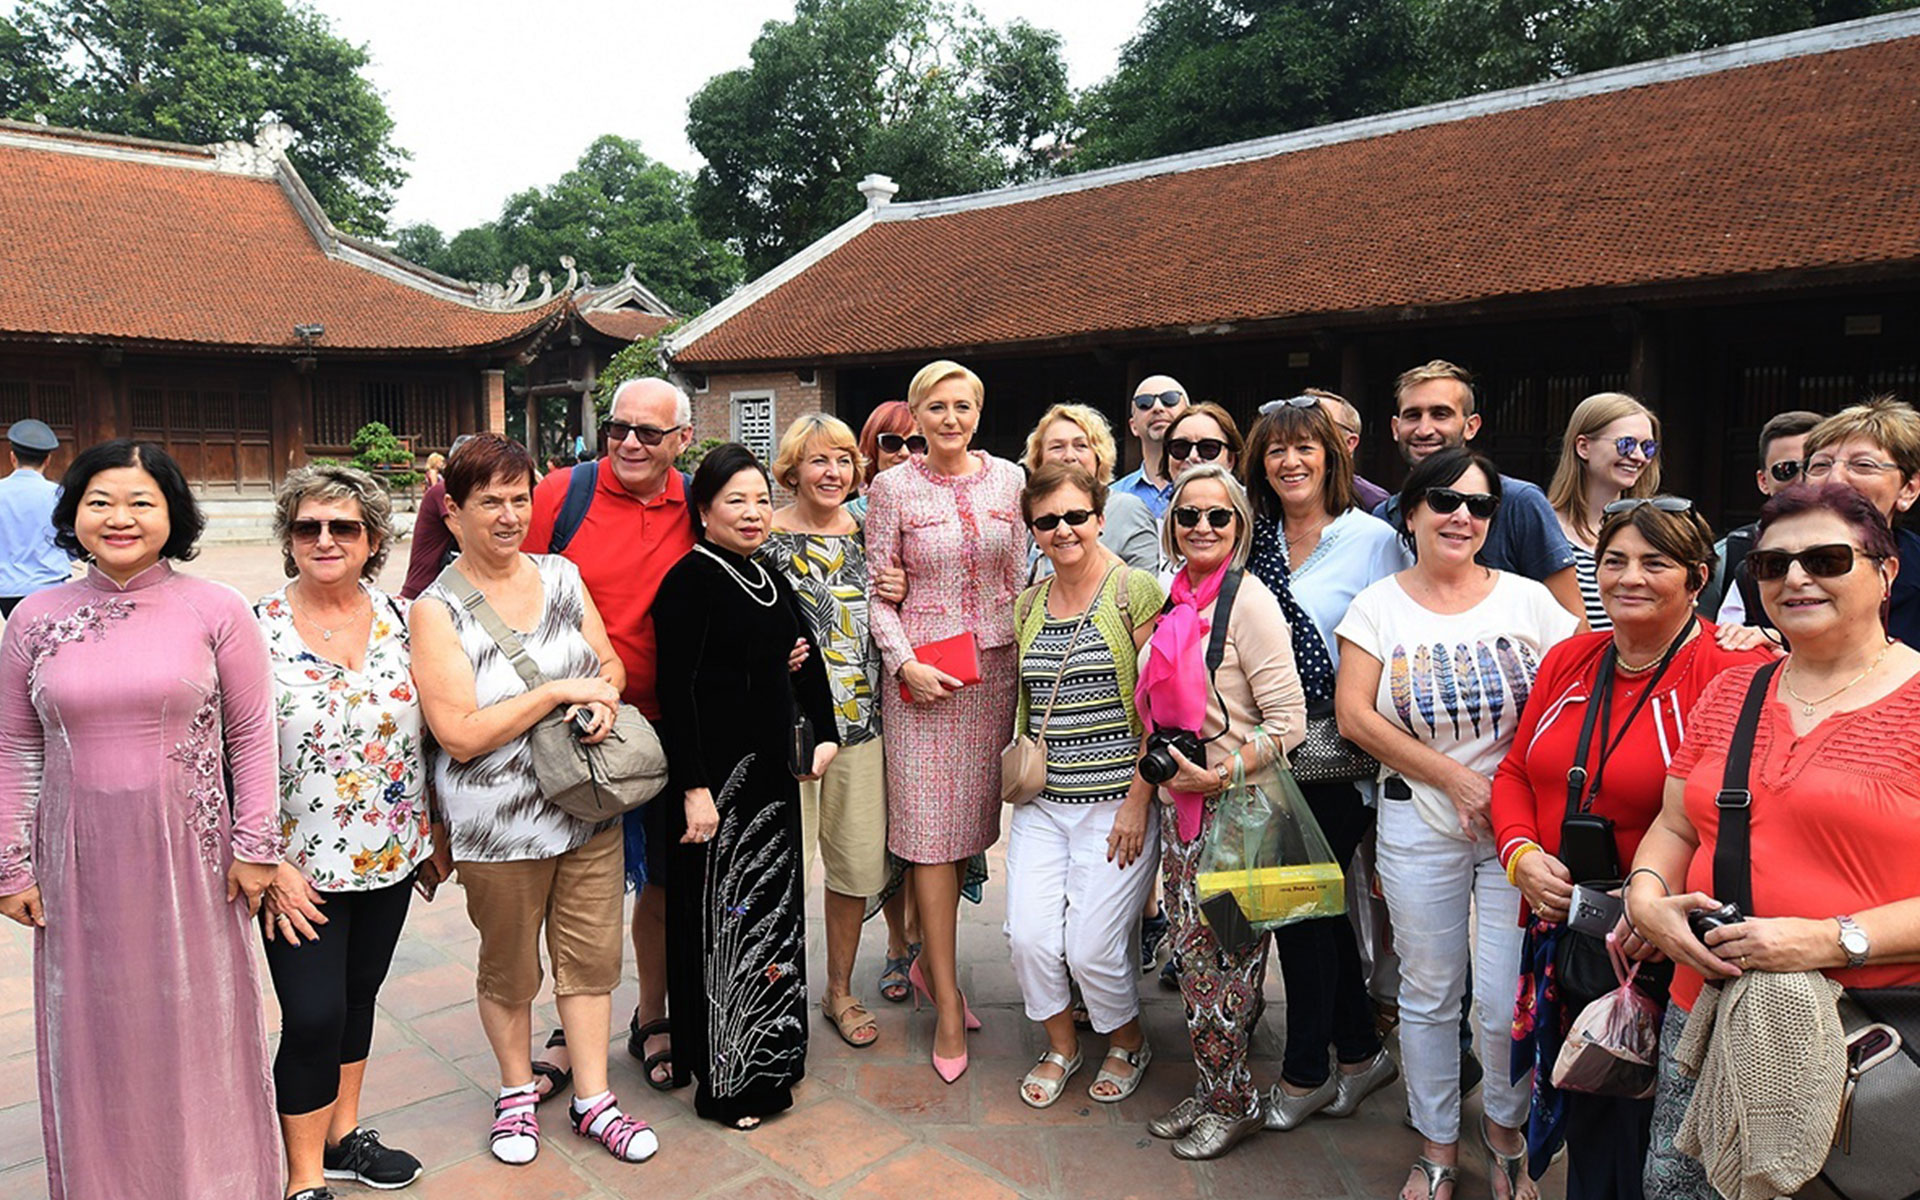 Polish President's wife, Agata Kornhauser-Duda, visited the Temple of Literature in 2017